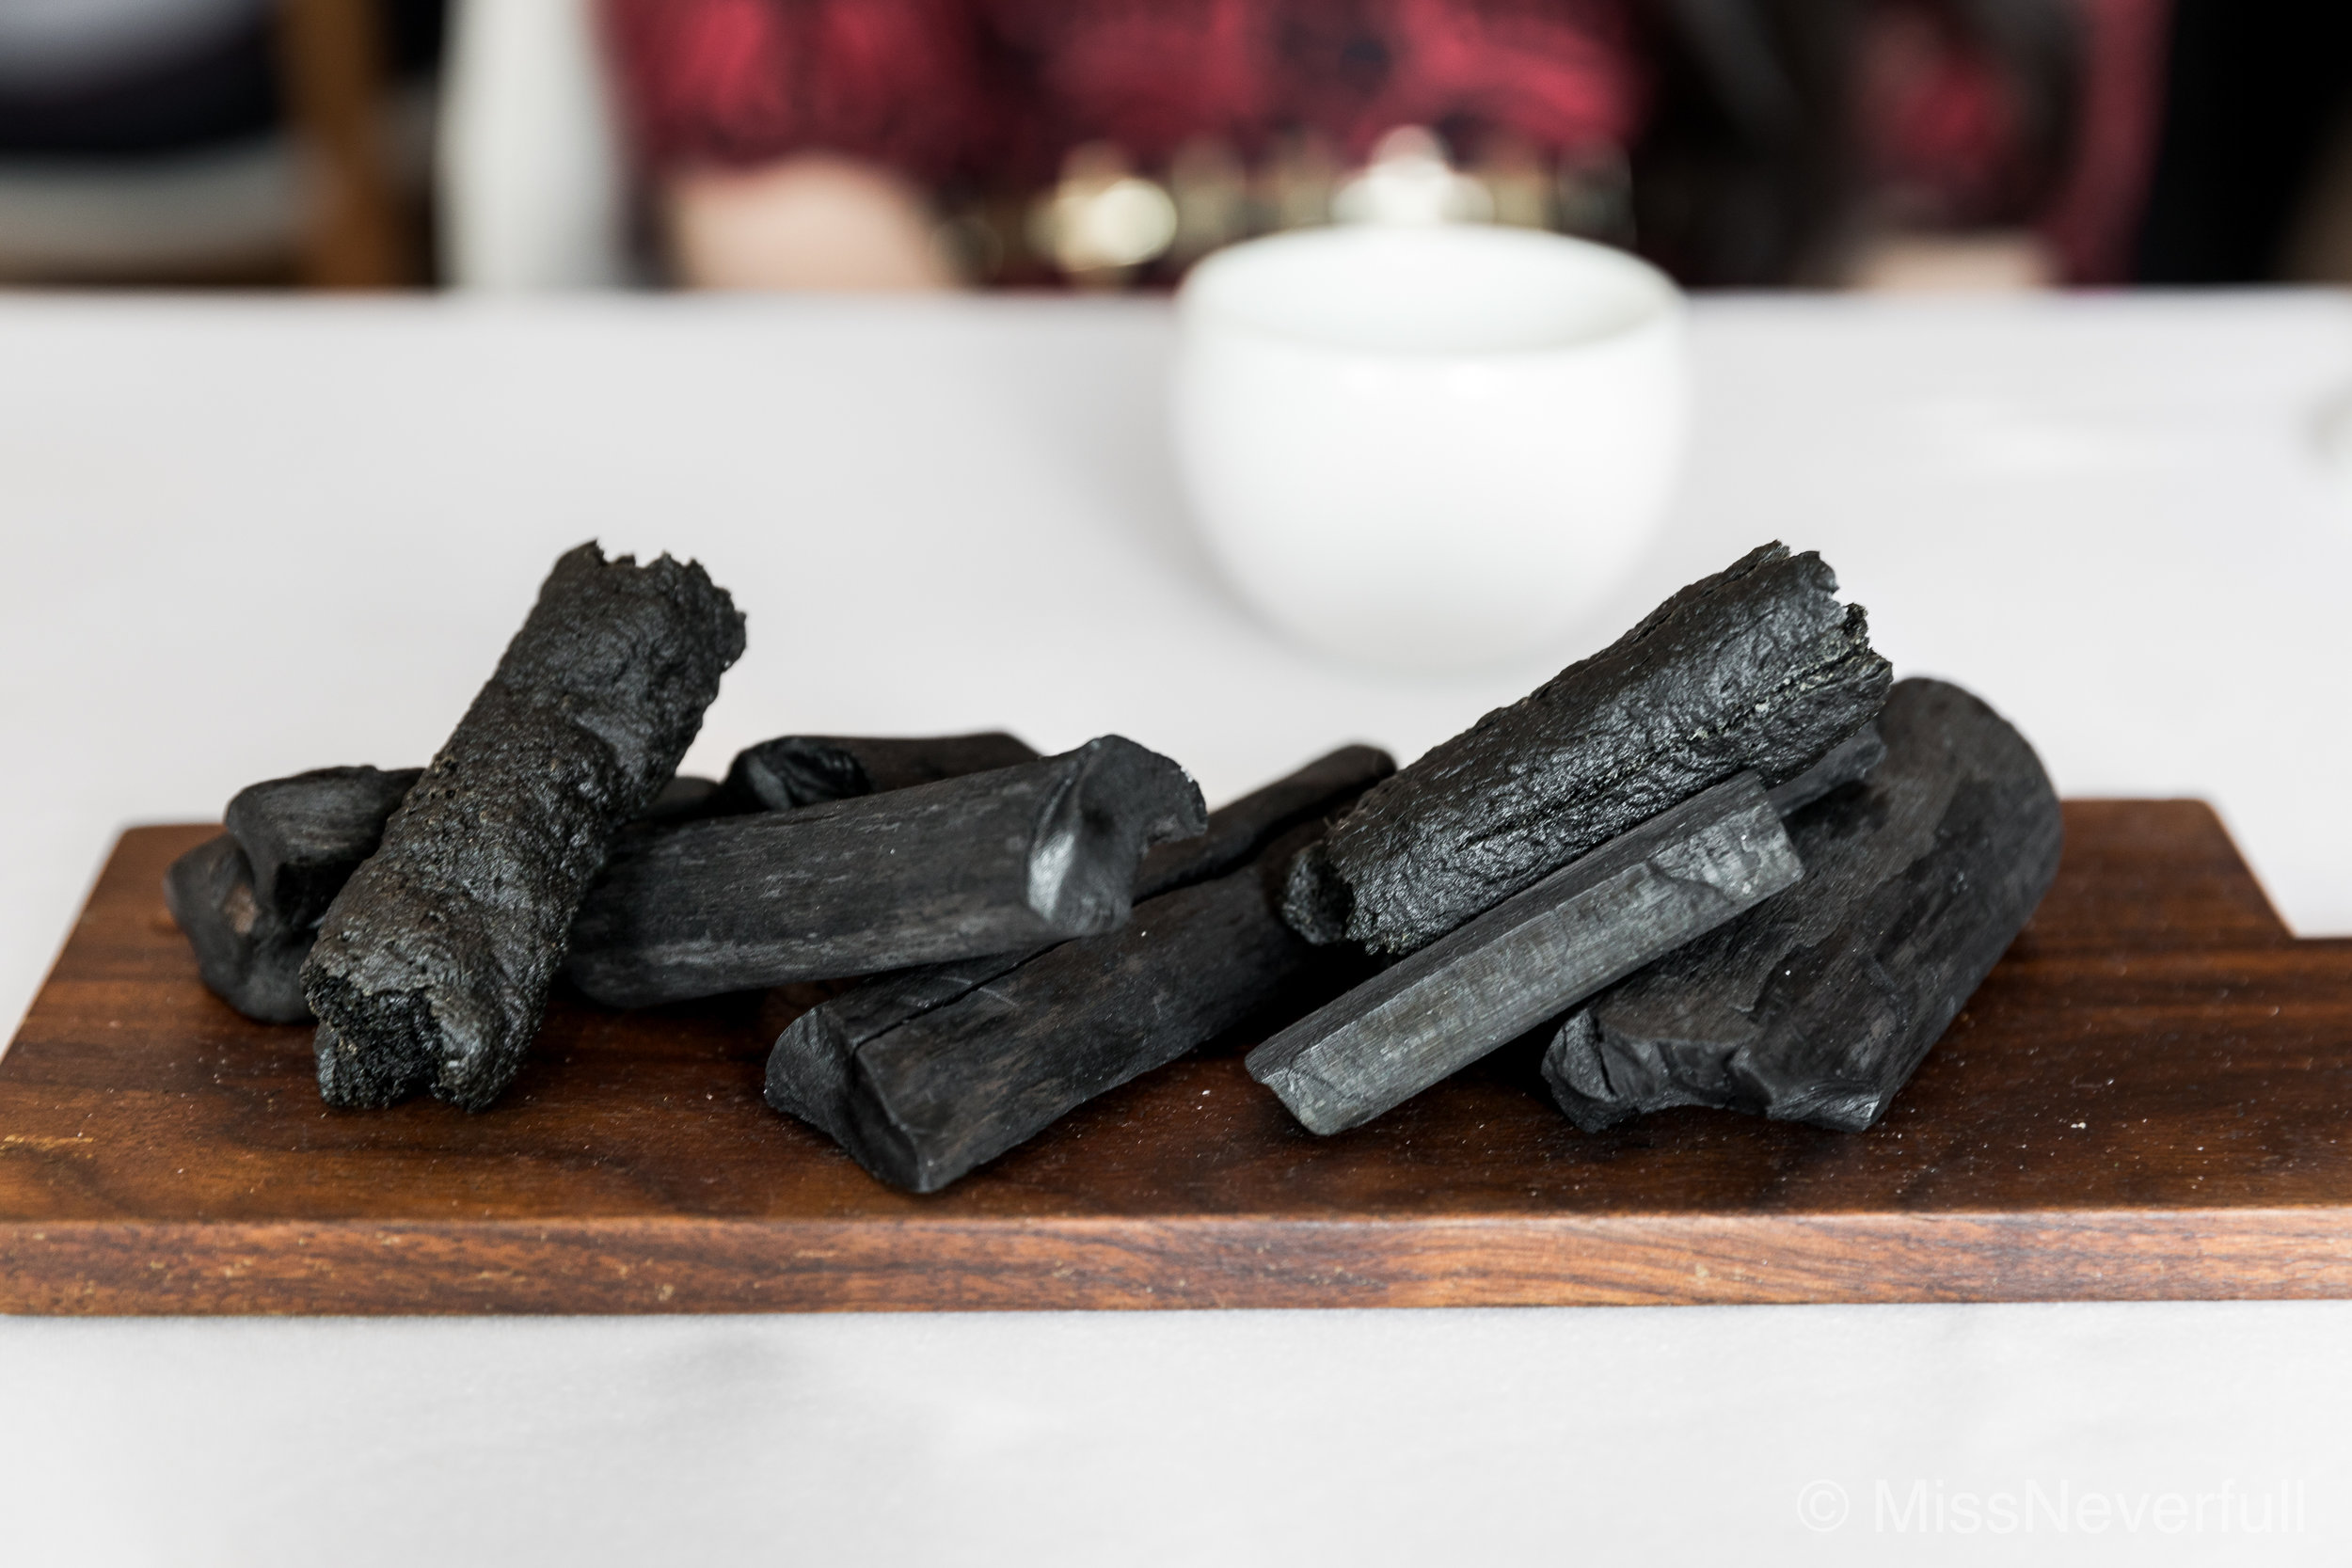 Part 3 of Amuse Bouche: Charcoal bread (only one piece is edible/person), served with a dip sauce of sweet prawn & piquillos